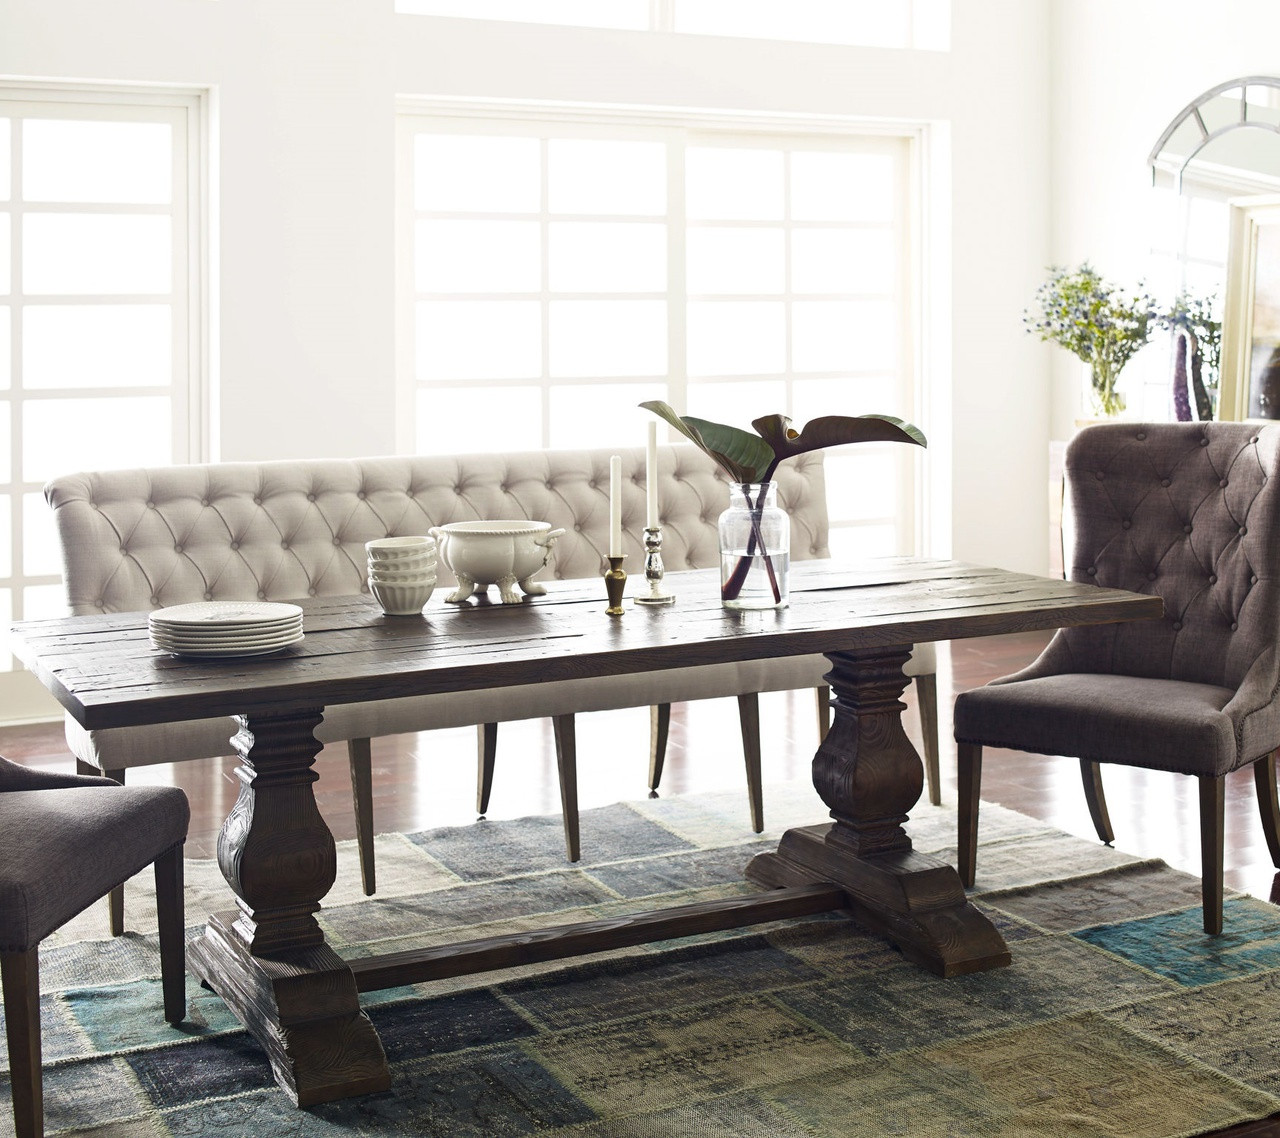 Dining Table With Chairs And Bench: French Tufted Upholstered Dining Bench Banquette